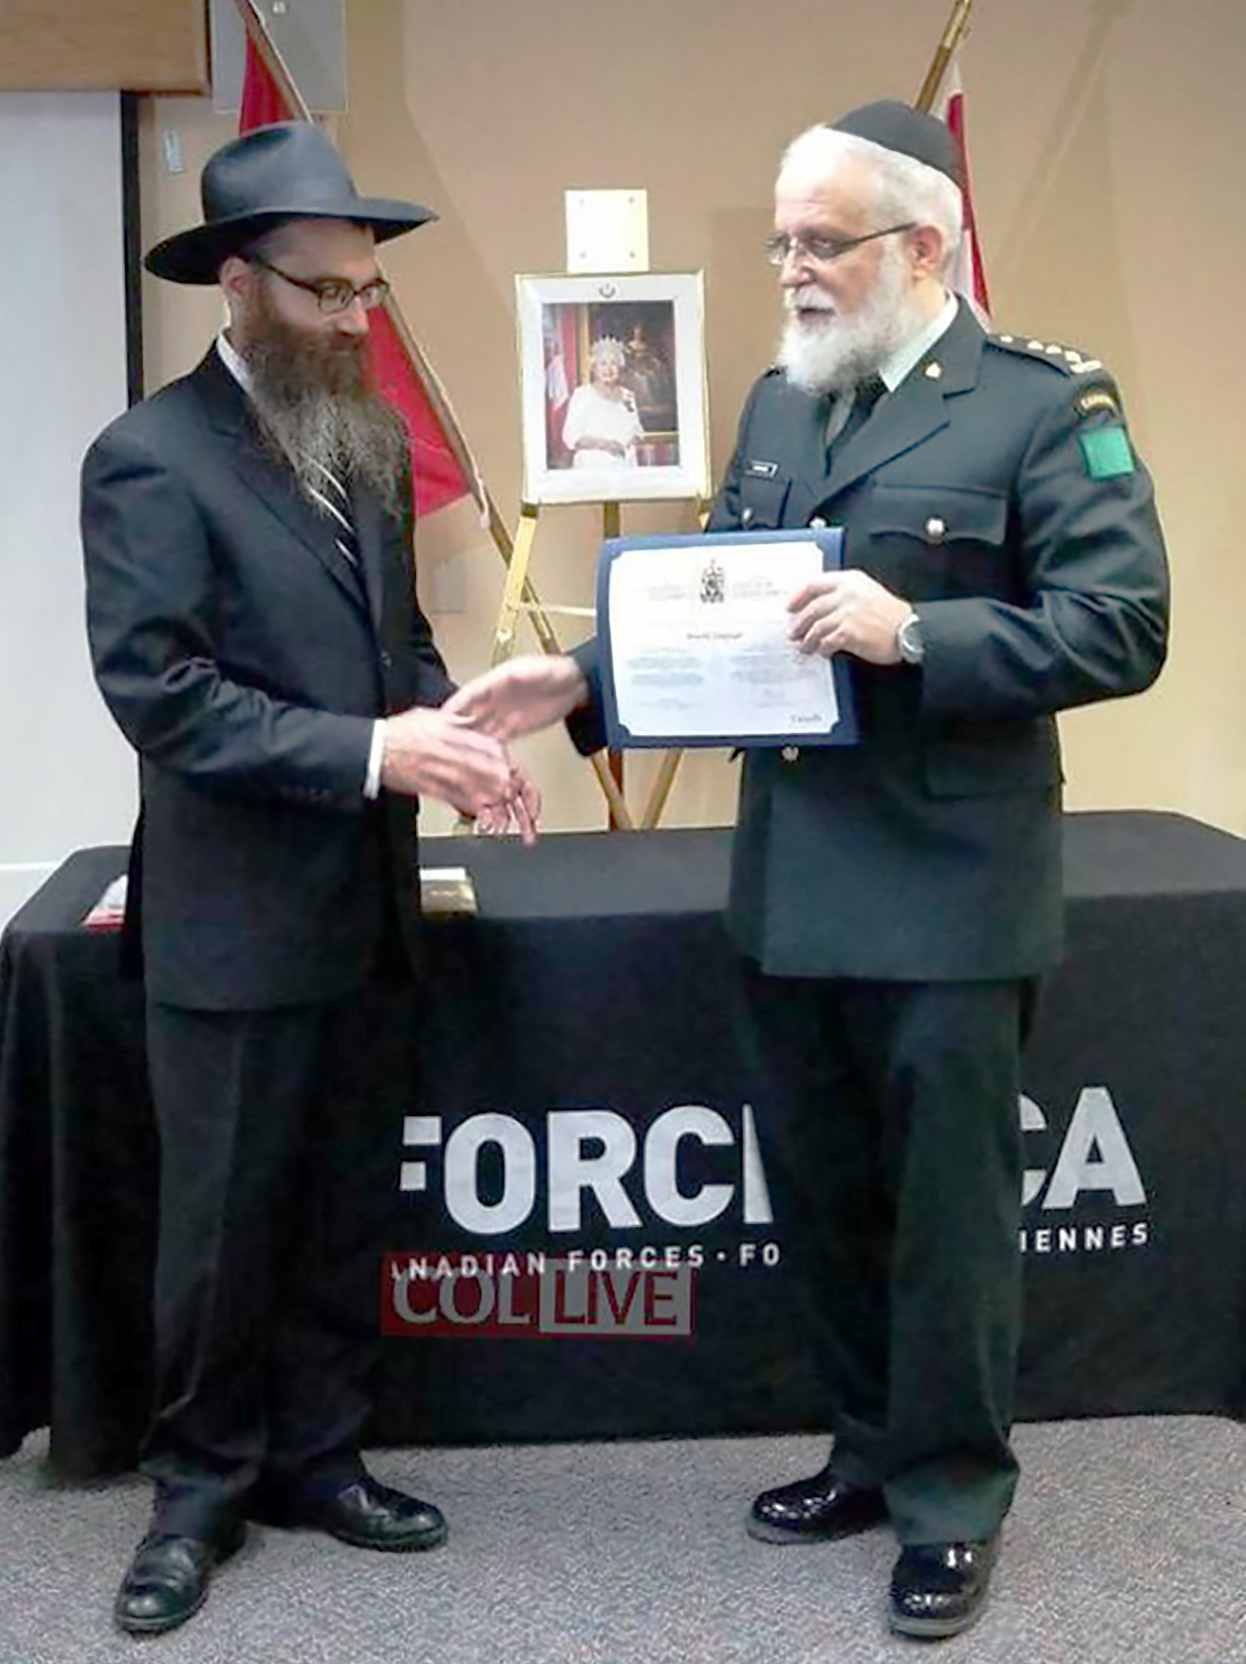 Rabbi Noteh Glogauer (left) becomes a chaplain with the rank of captain in the Royal Canadian Air Force in an attesting ceremony officiated by 4th Canadian Division Chaplain Captain (Rabbi) Lazer Danzinger. The ceremony was held November 29, 2017, at the Canadian Armed Forces Recruiting Centre in Toronto, Ontario. PHOTO: http://www.collive.com